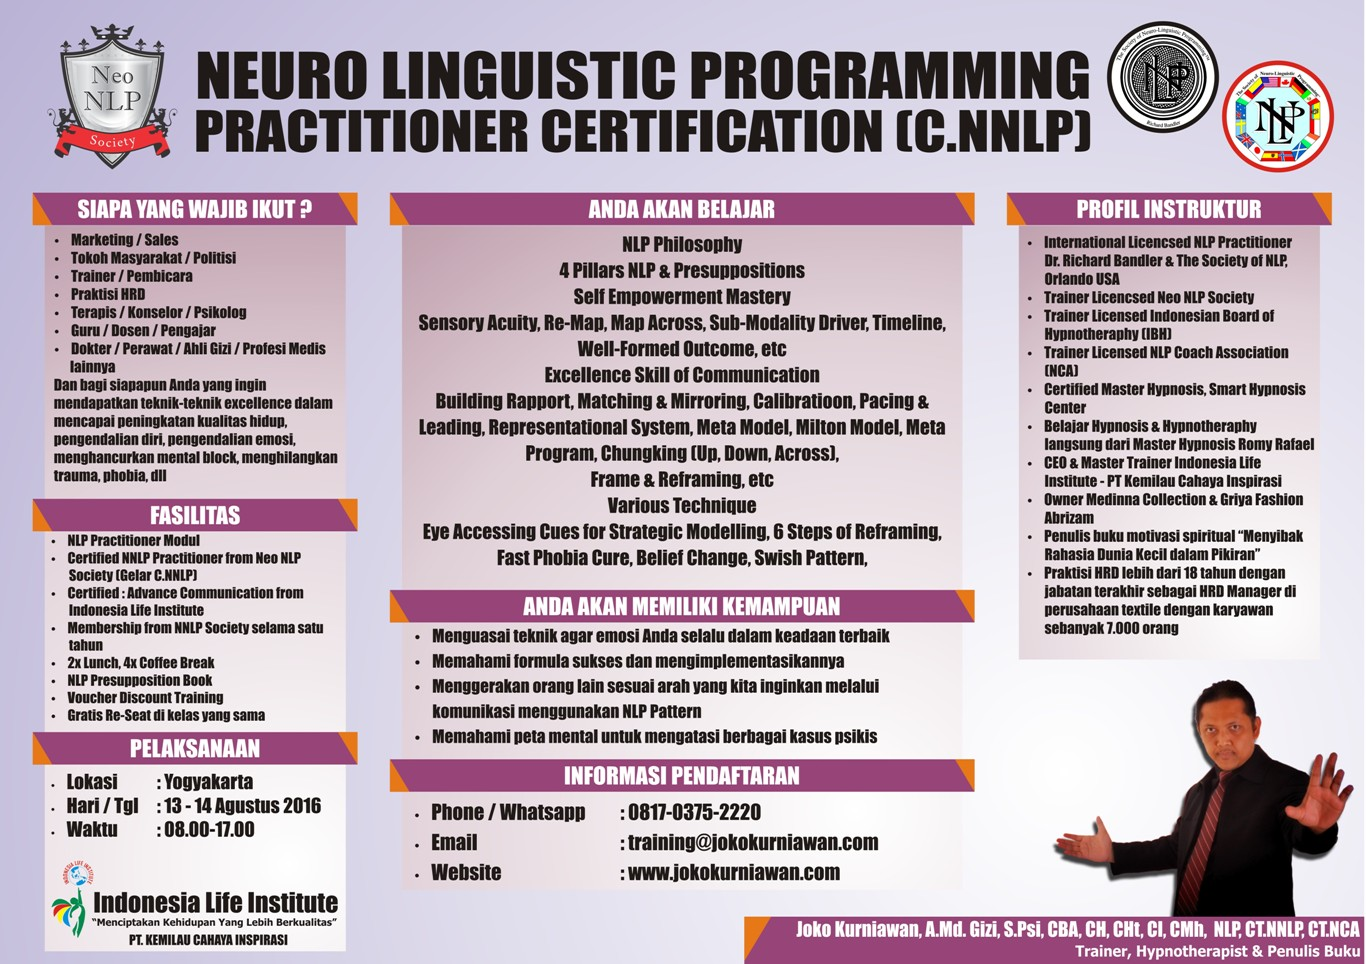 neo nlp  neuro linguistic programming  practitioner